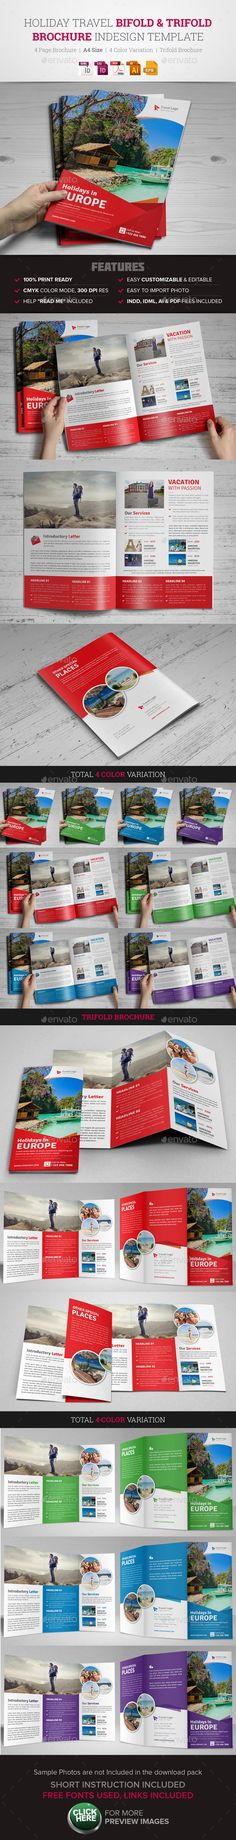 15 Travel Brochure Examples With Enticing Designs Brochures - sample travel brochure